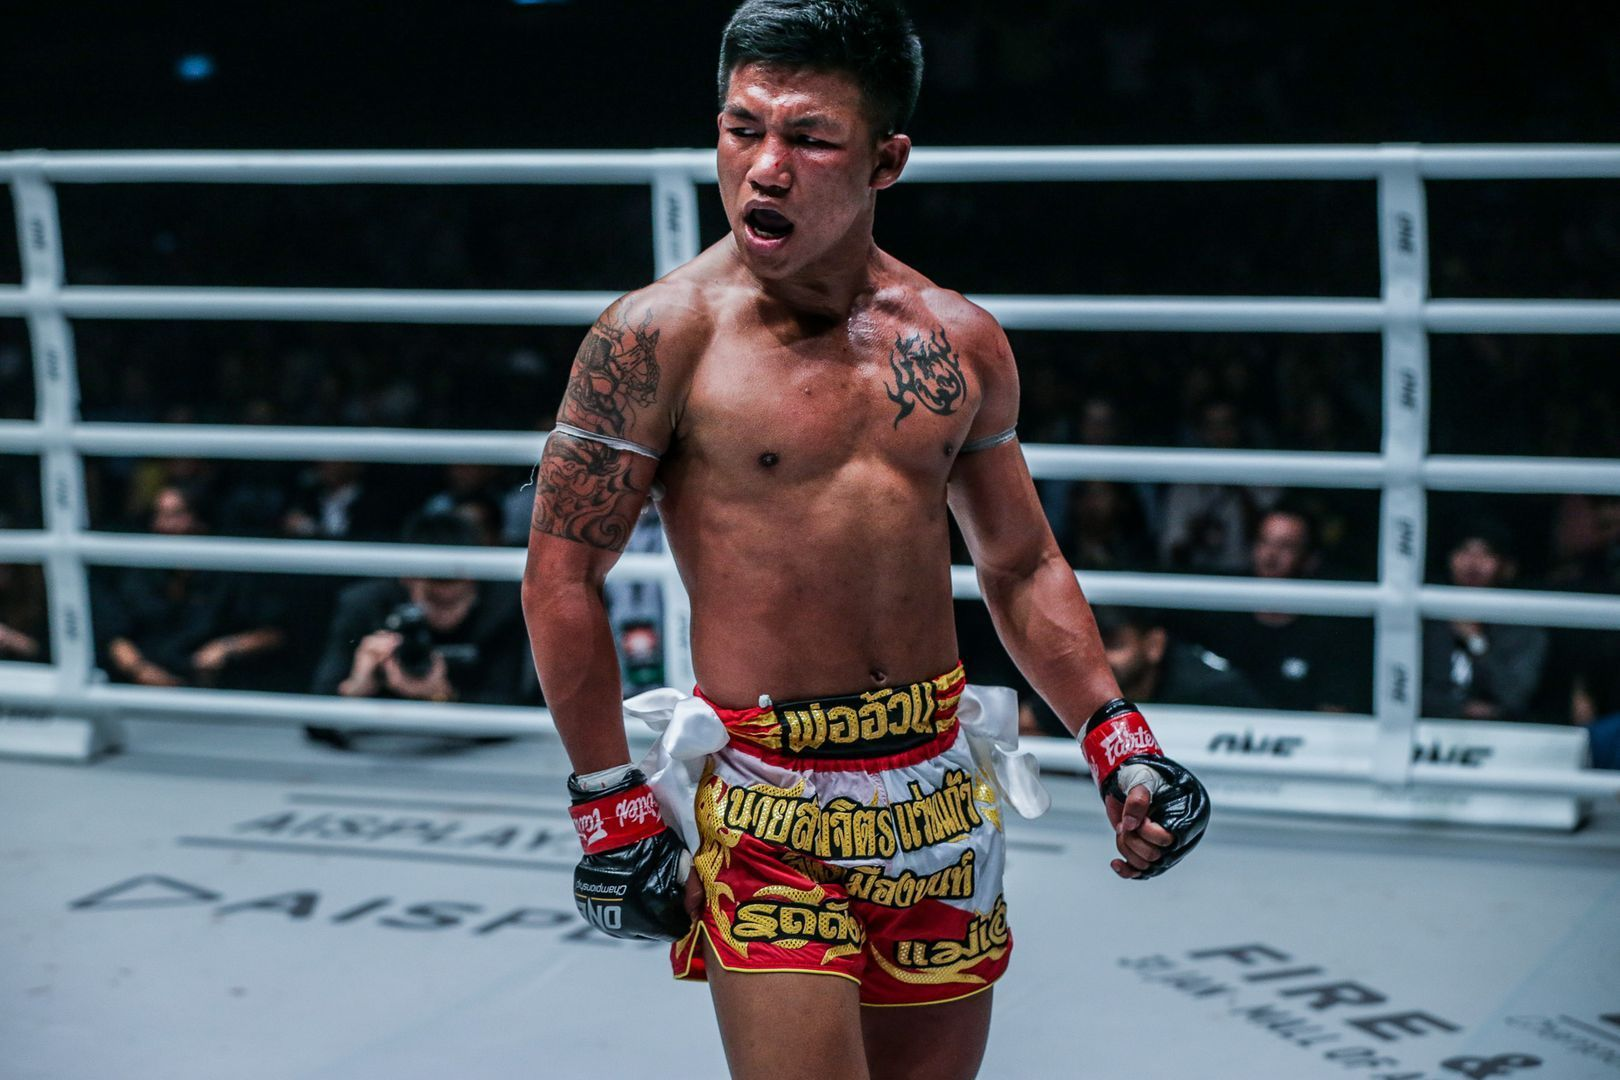 ONE Flyweight Muay Thai World Champ Rodtang Jitmuangnon stands tall in his victory over Jonathan Haggerty in January 2020